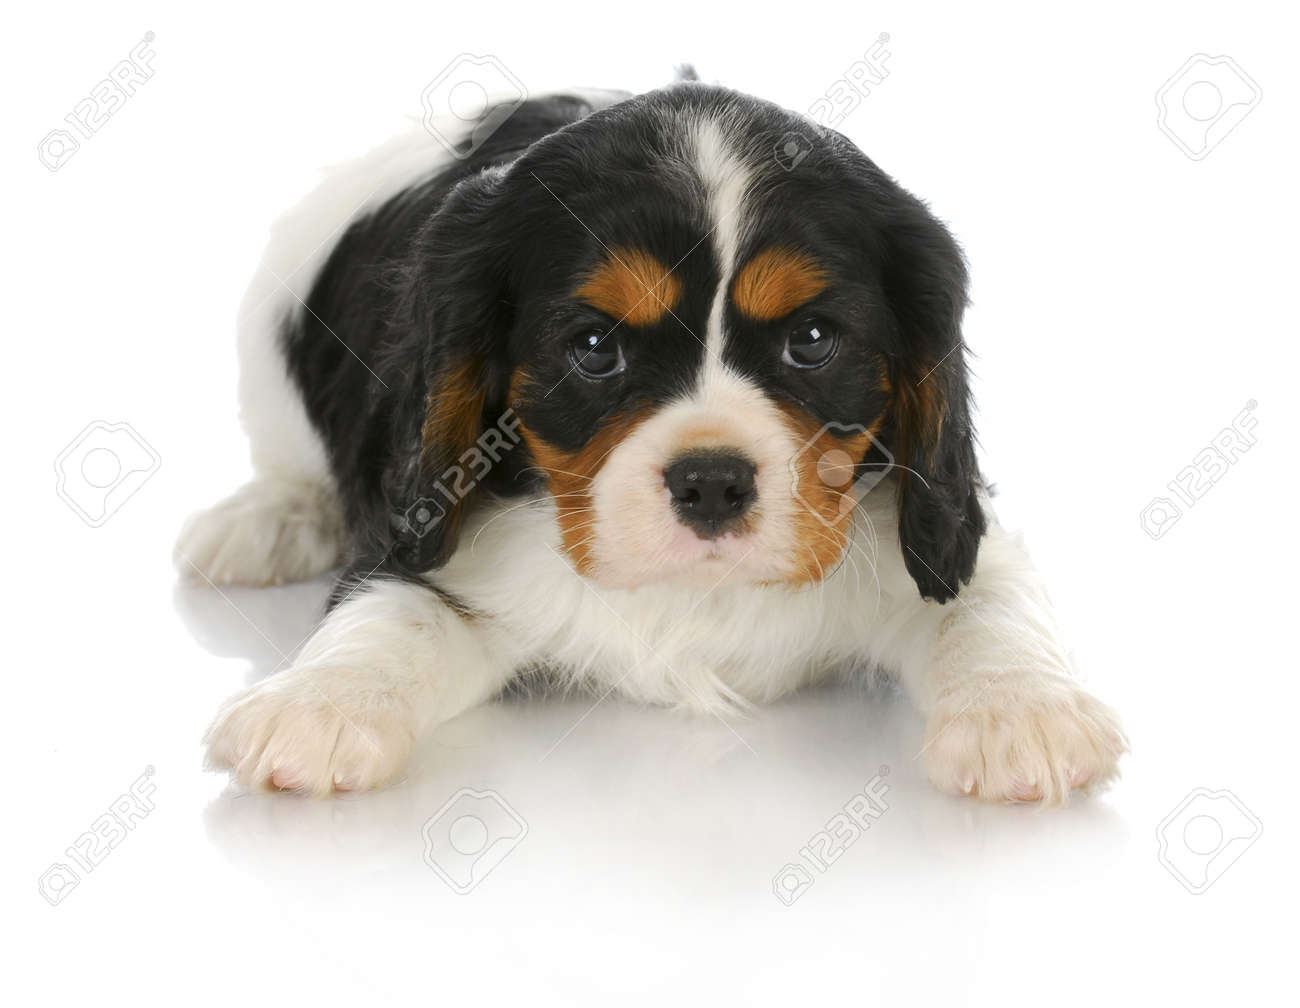 Cute Puppy Tri Color Cavalier King Charles Spaniel Puppy Laying Stock Photo Picture And Royalty Free Image Image 10594774